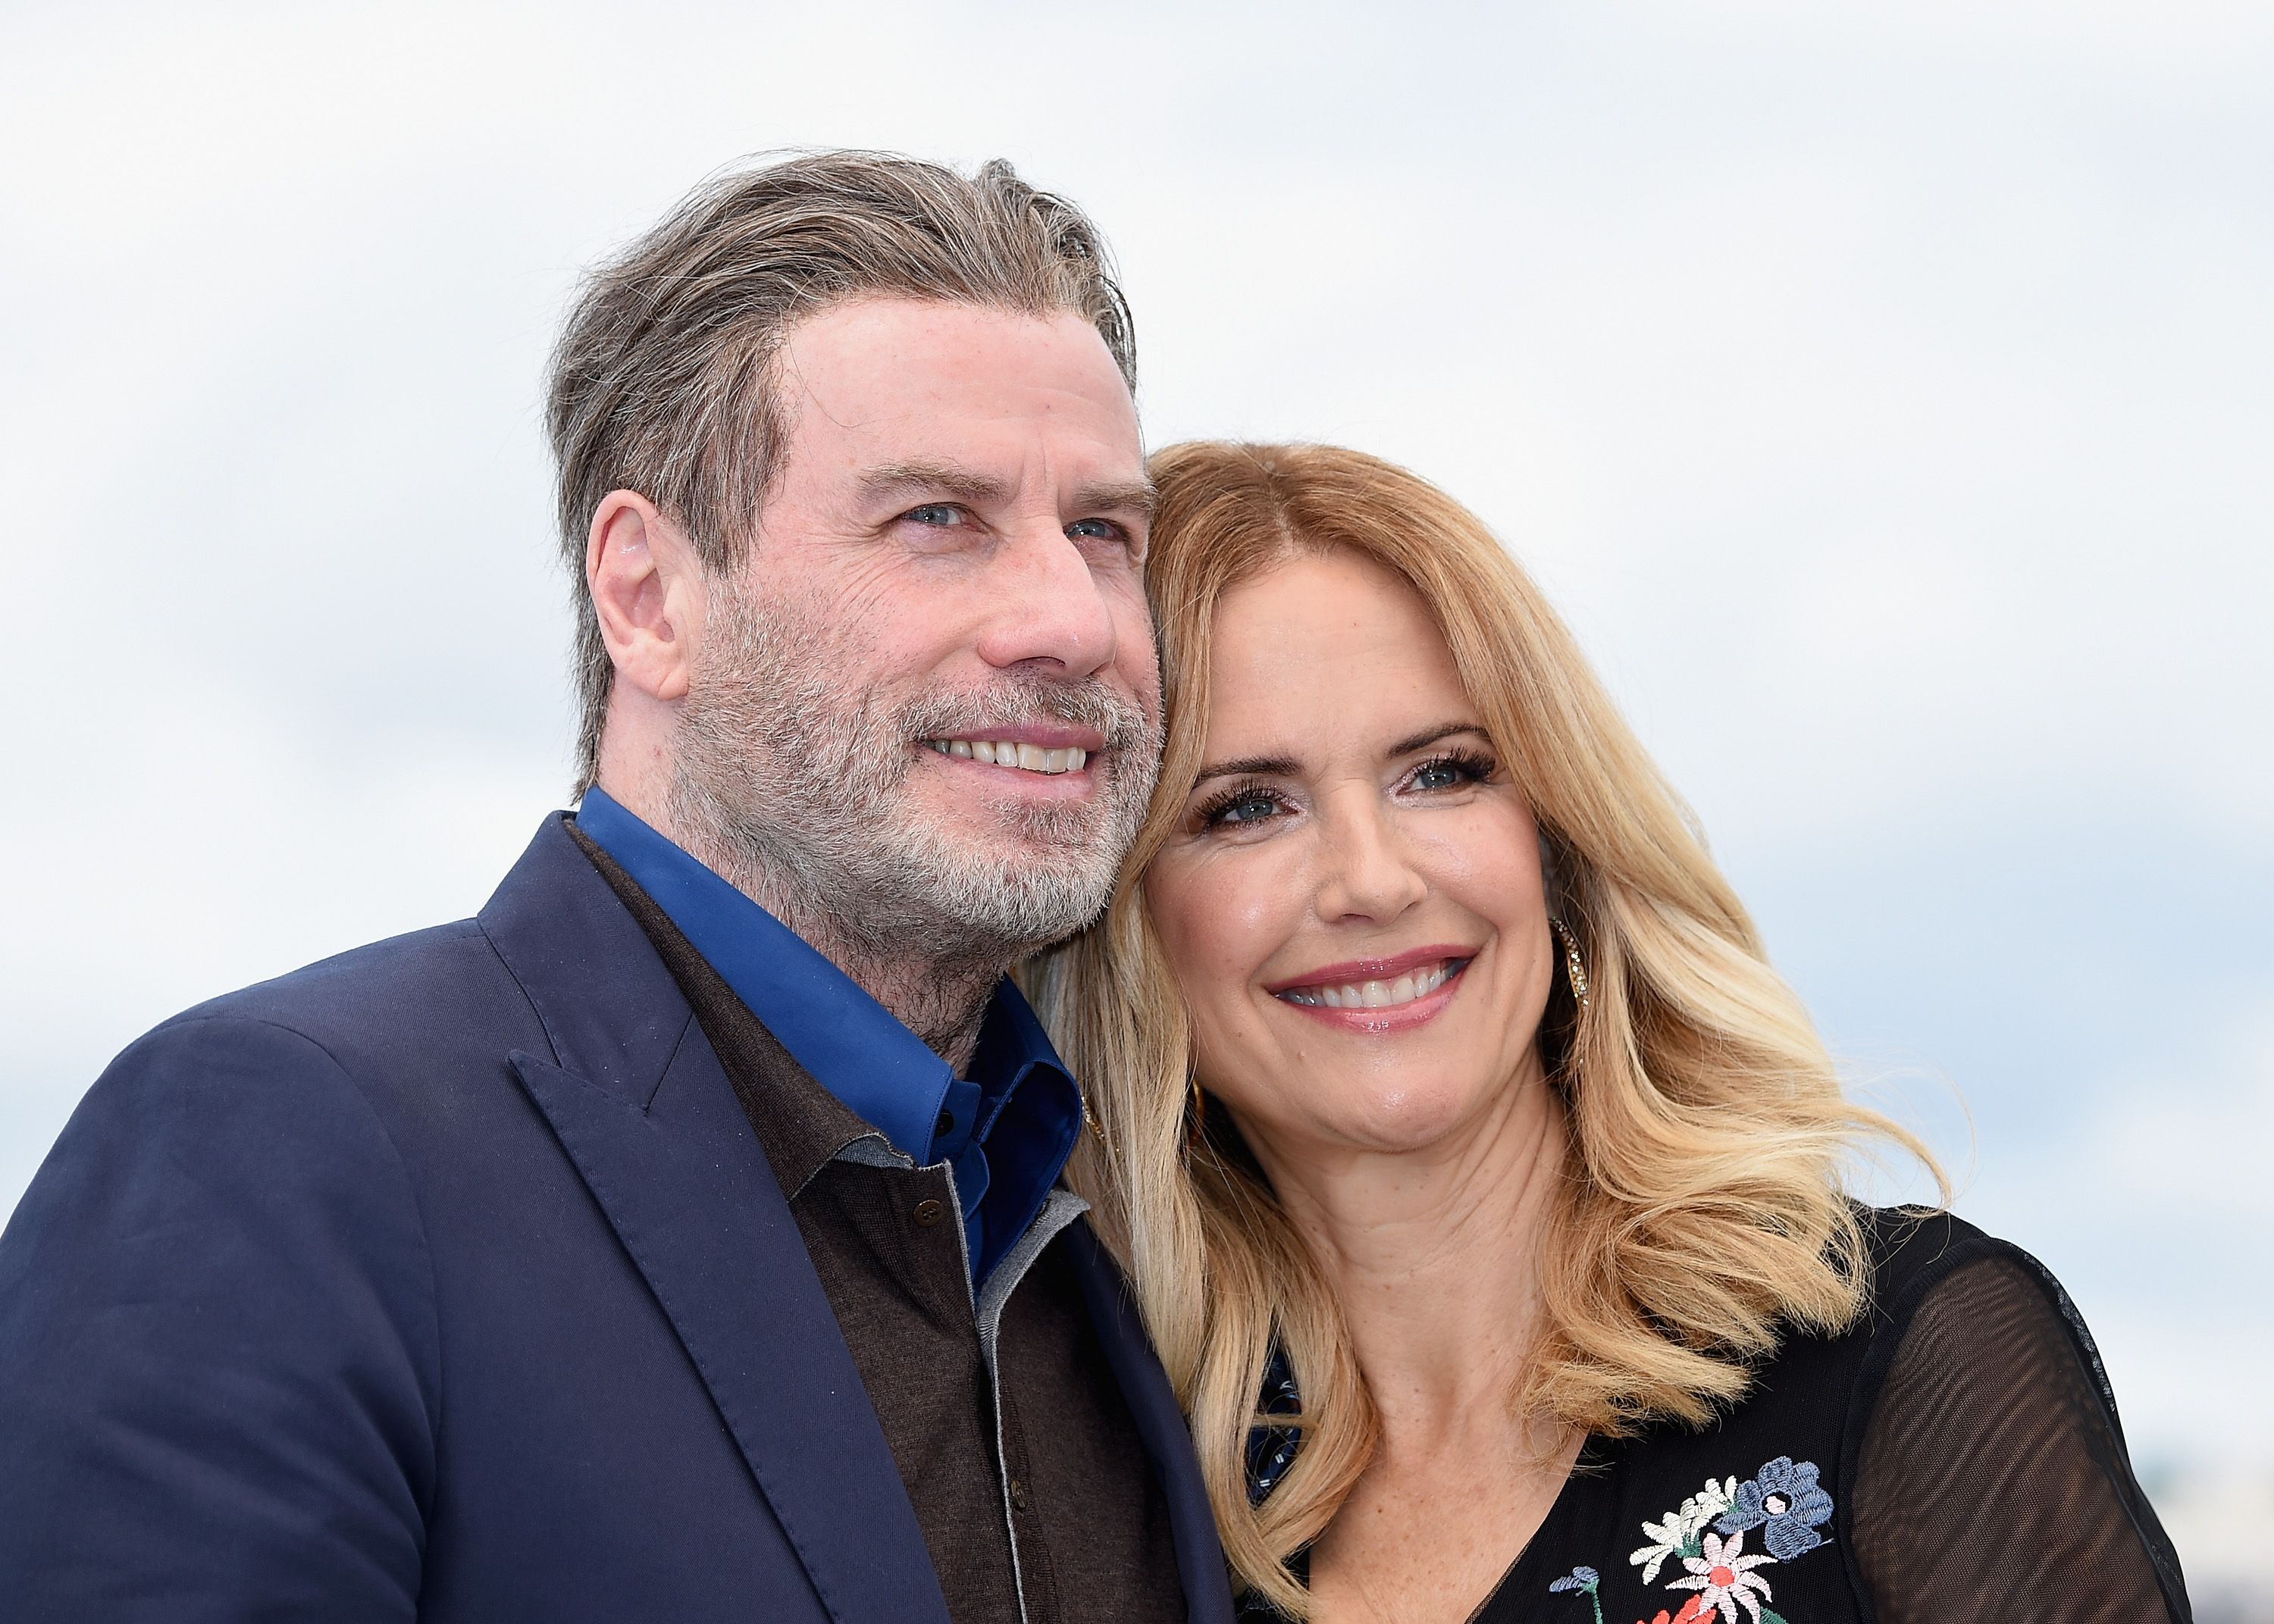 John Travolta and Kelly Preston at the 71st annual Cannes Film Festival in 2018 | Source: Getty Images